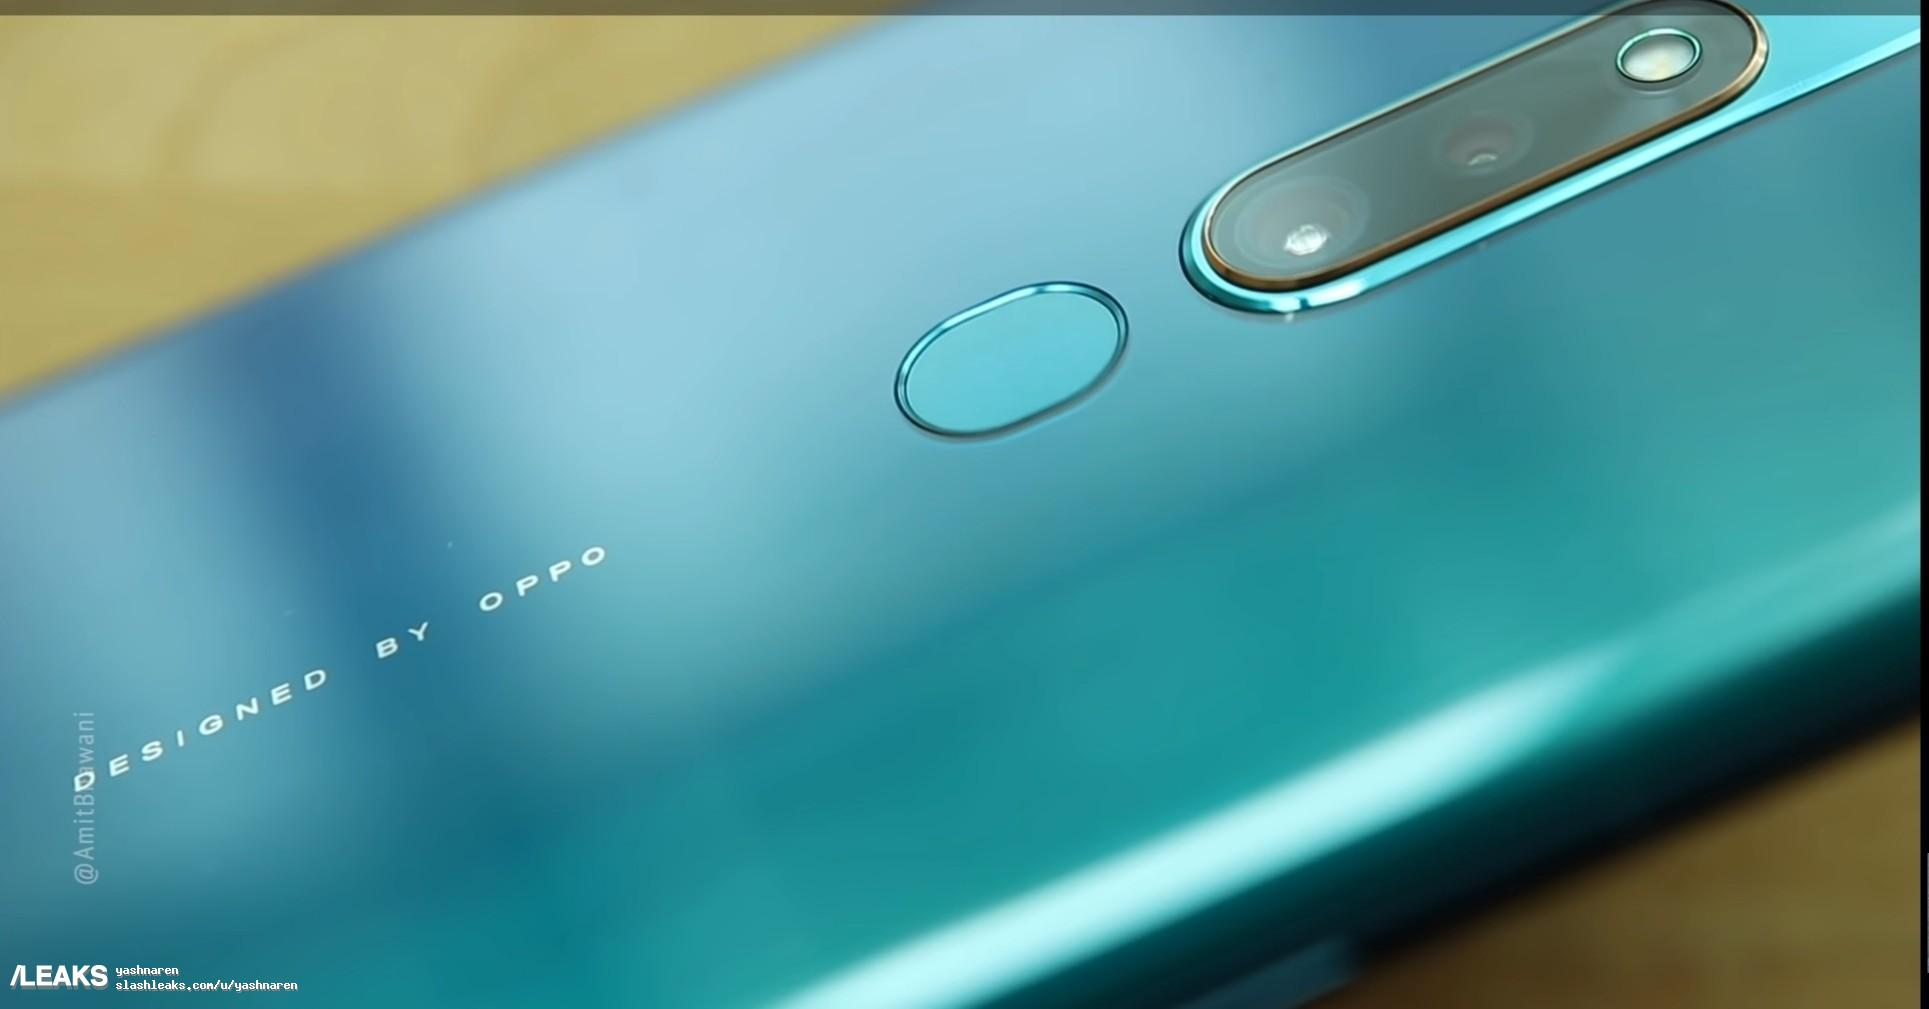 OPPO F11 Pro Live Images & Retail Box Surfaced Ahead Of Launch